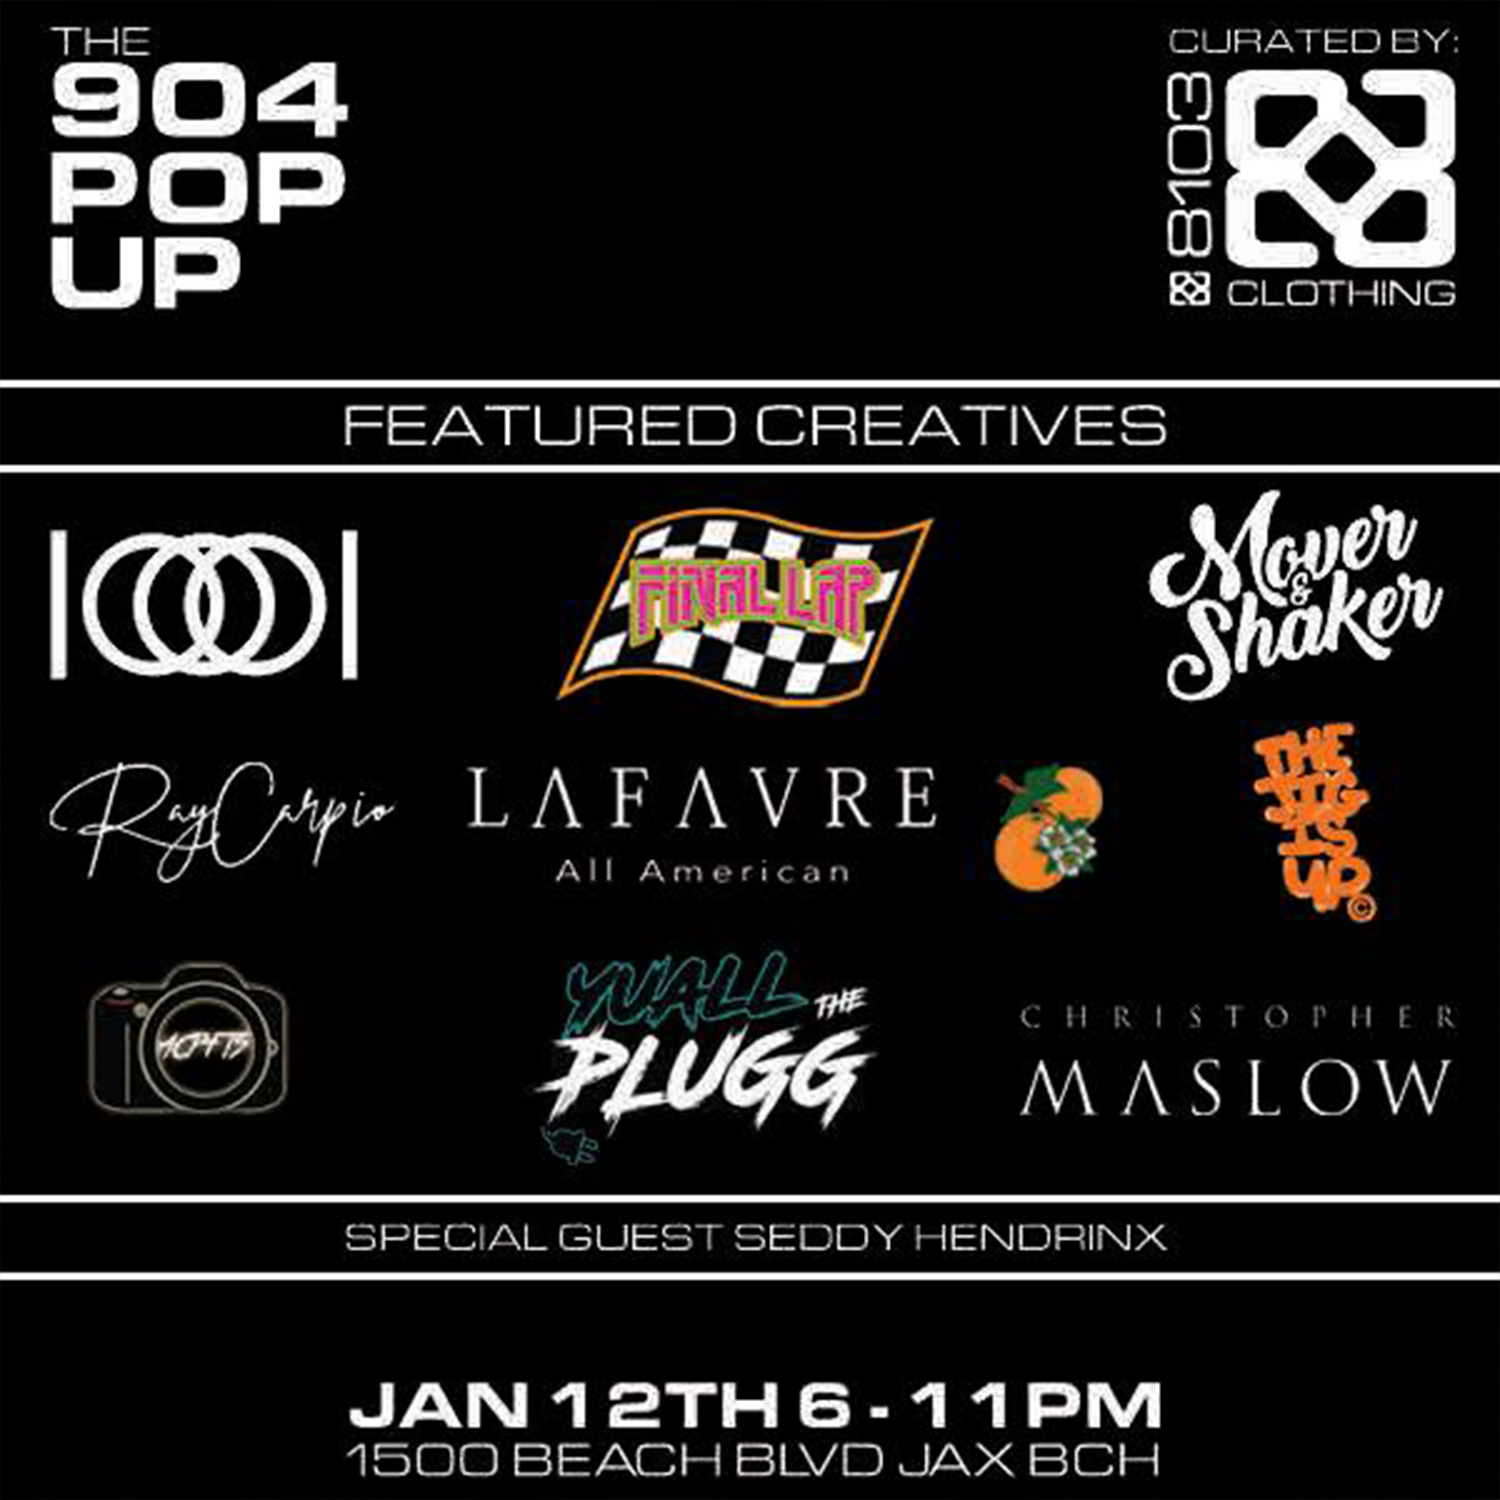 The 904 Pop-Up